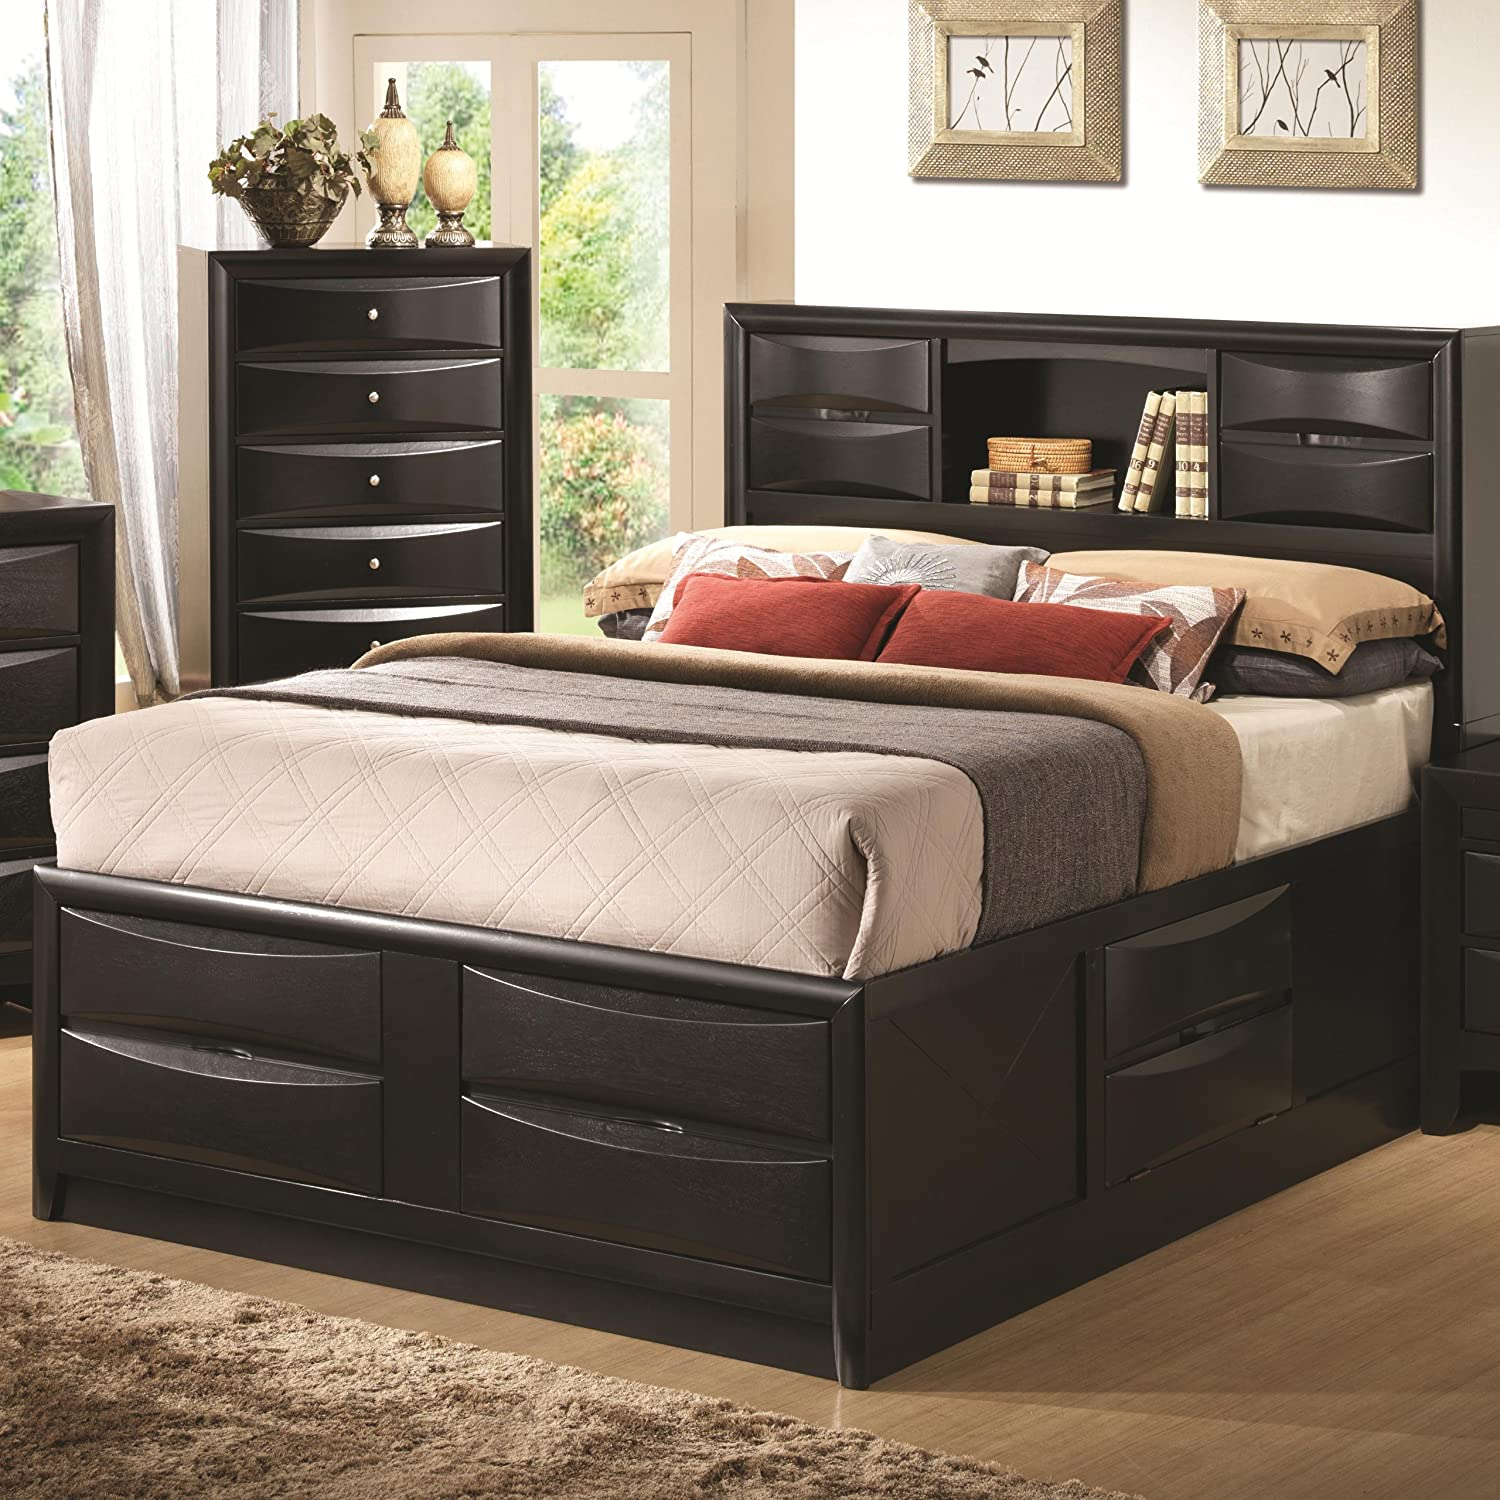 amazoncom briana black bookcase eastern king storage bed kitchen dining